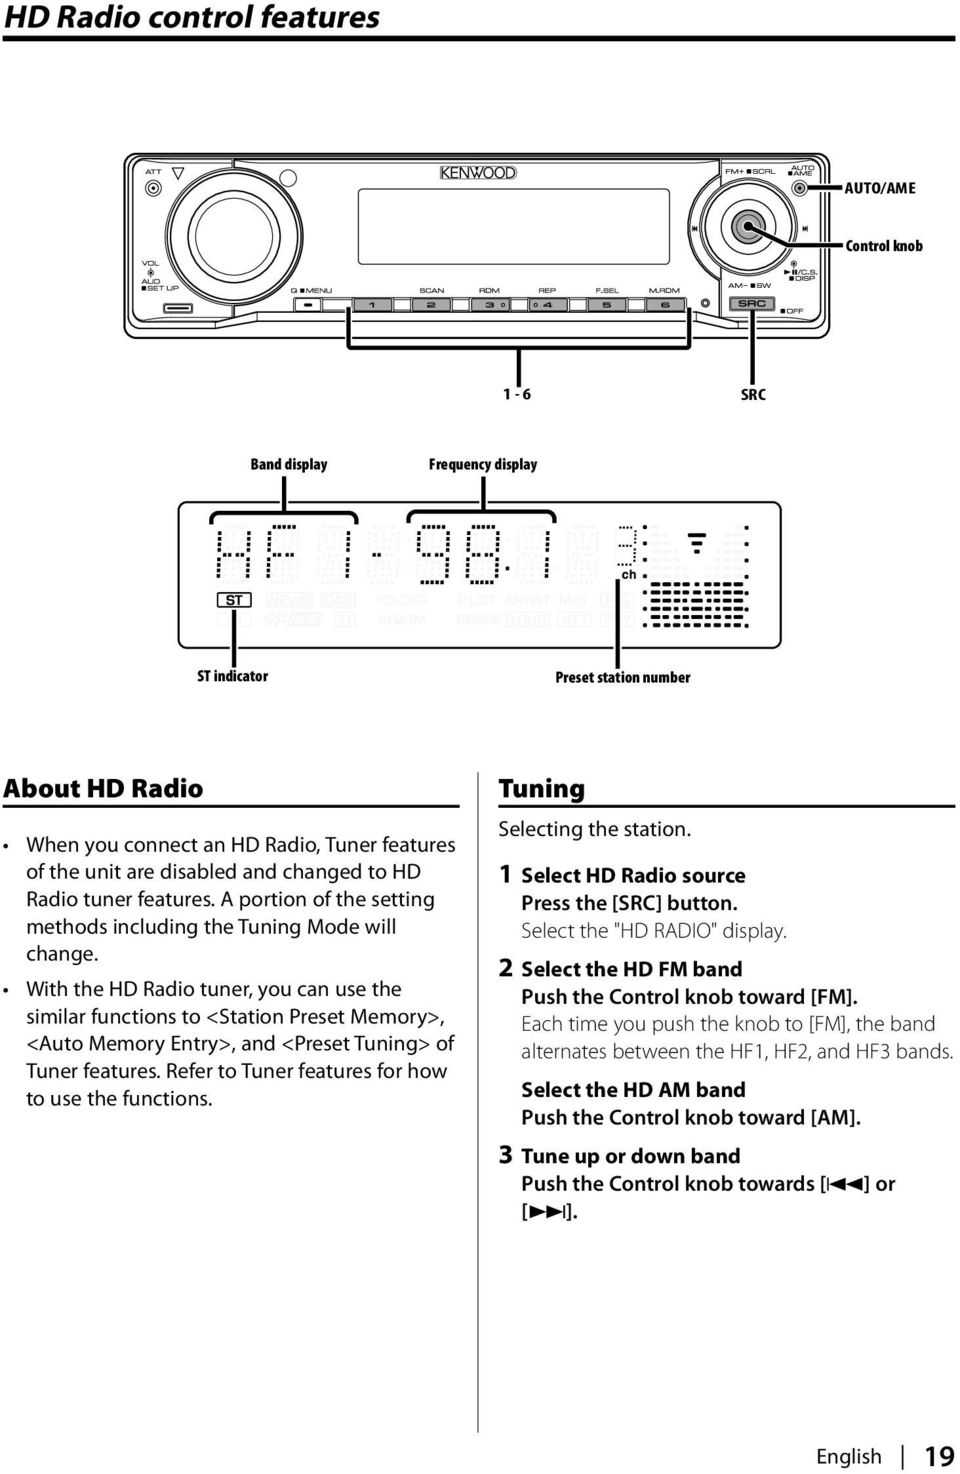 With the HD Radio tuner, you can use the similar functions to <Station Preset Memory>, <Auto Memory Entry>, and <Preset Tuning> of Tuner features. Refer to Tuner features for how to use the functions.